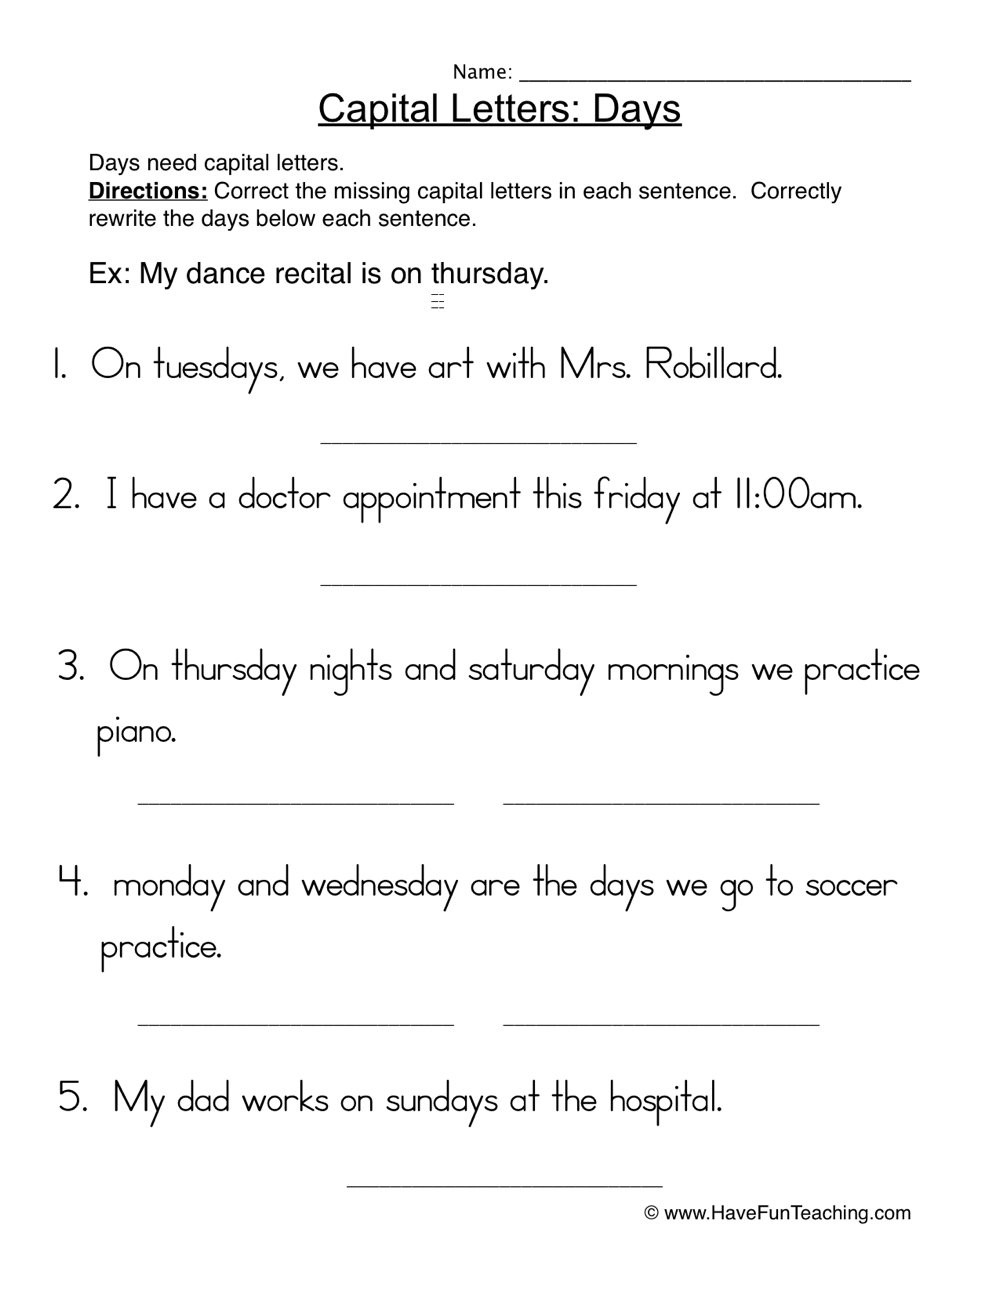 capital letters days worksheet 1